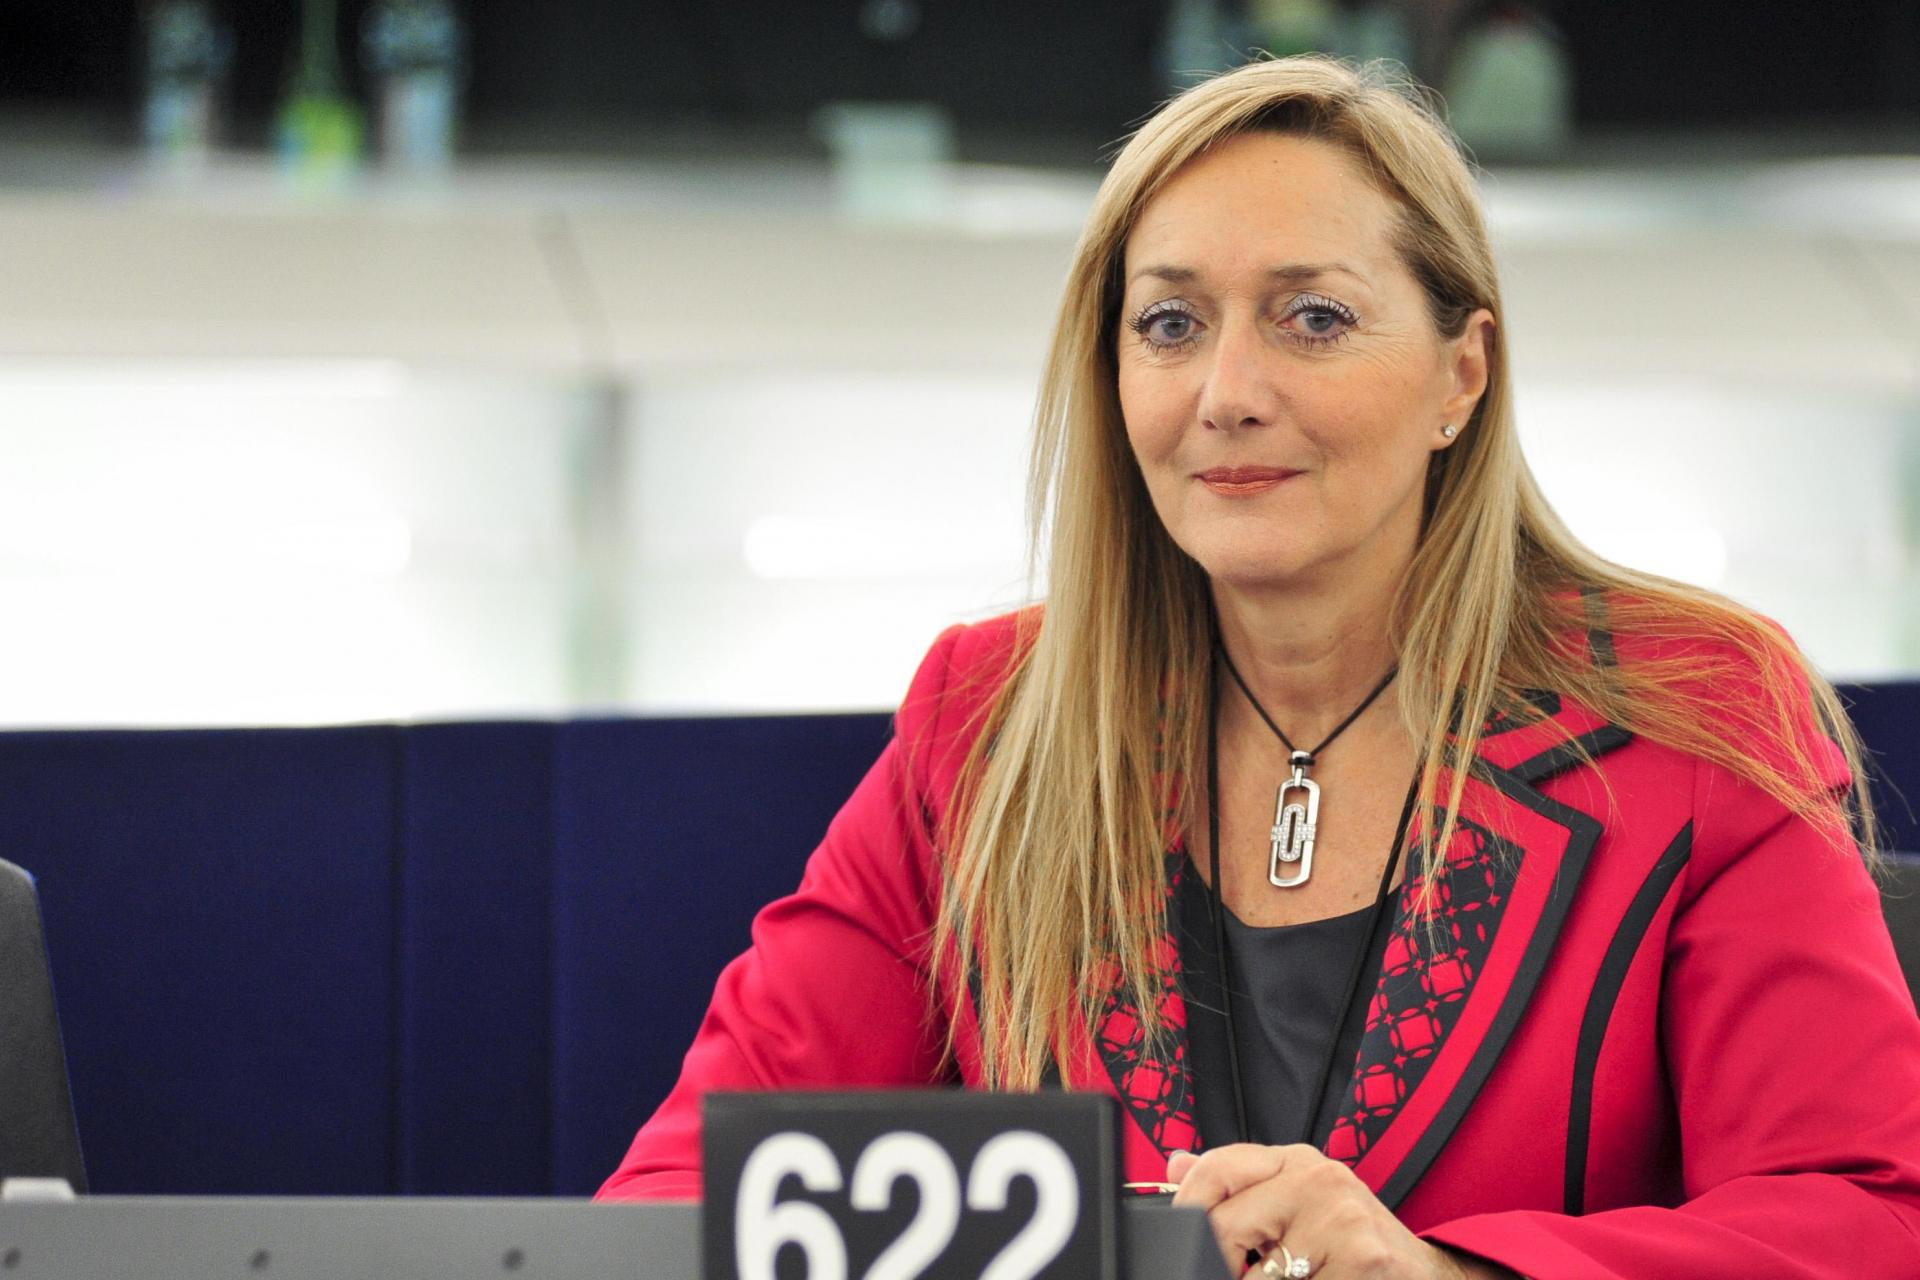 Chris Fearne must take over 'now' - Former Labour MEP Marlene Mizzi